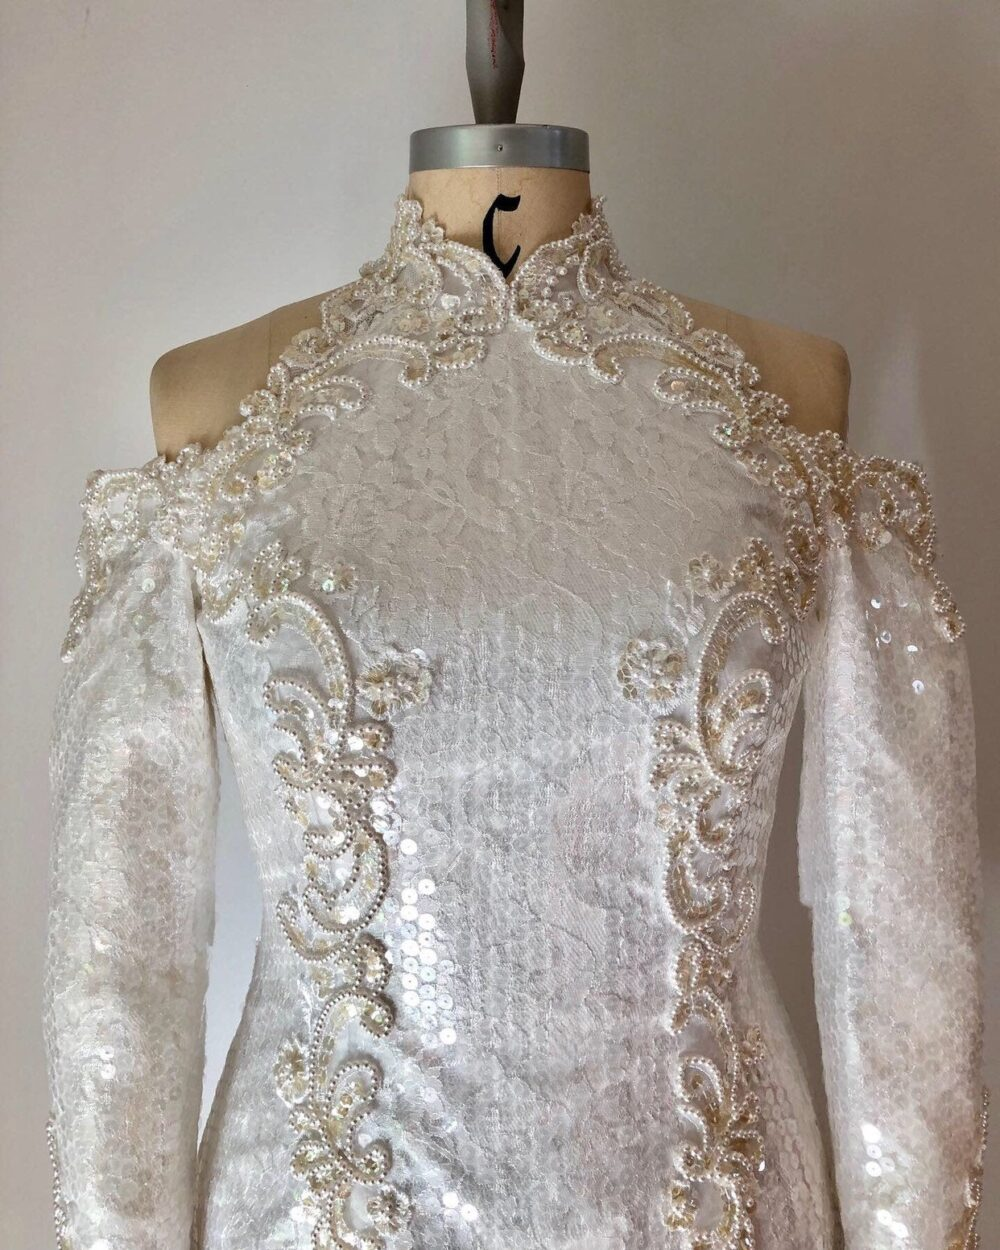 Exquisite Avant-Garde Vintage 1980's Demetrio's Wedding Gown, Dress, 80's Dress